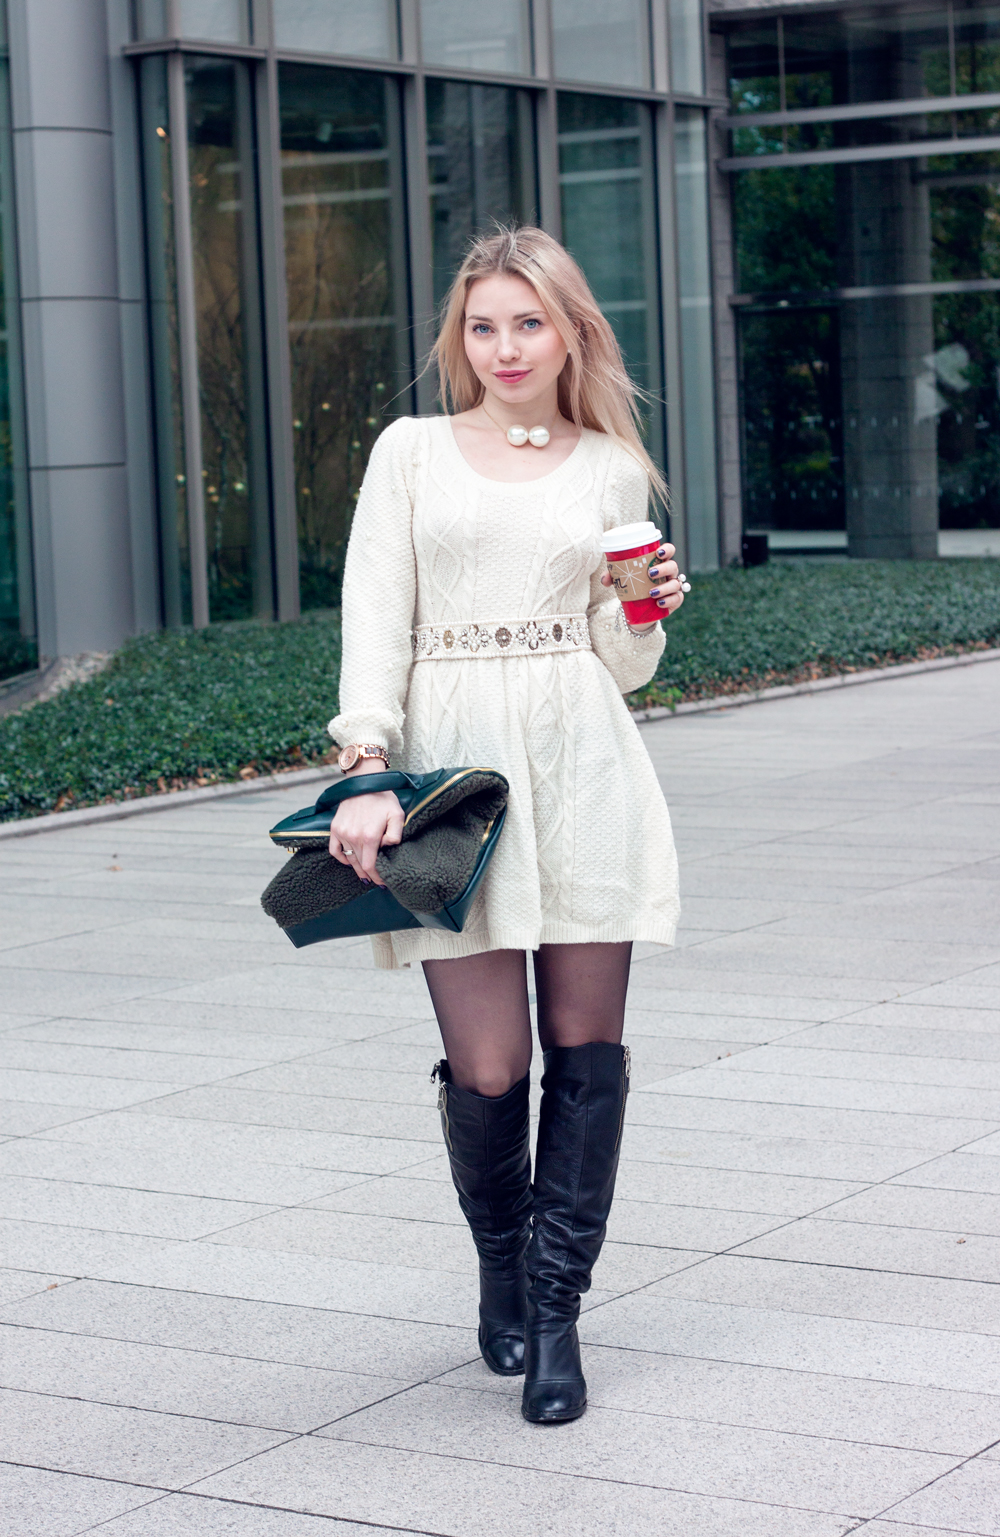 Knitted dress with pearls, starbucks matcha latte, pearl earrings, pearl necklace, knee high boots, pearls belt, fur clutch. Roppongi, Tokyo.